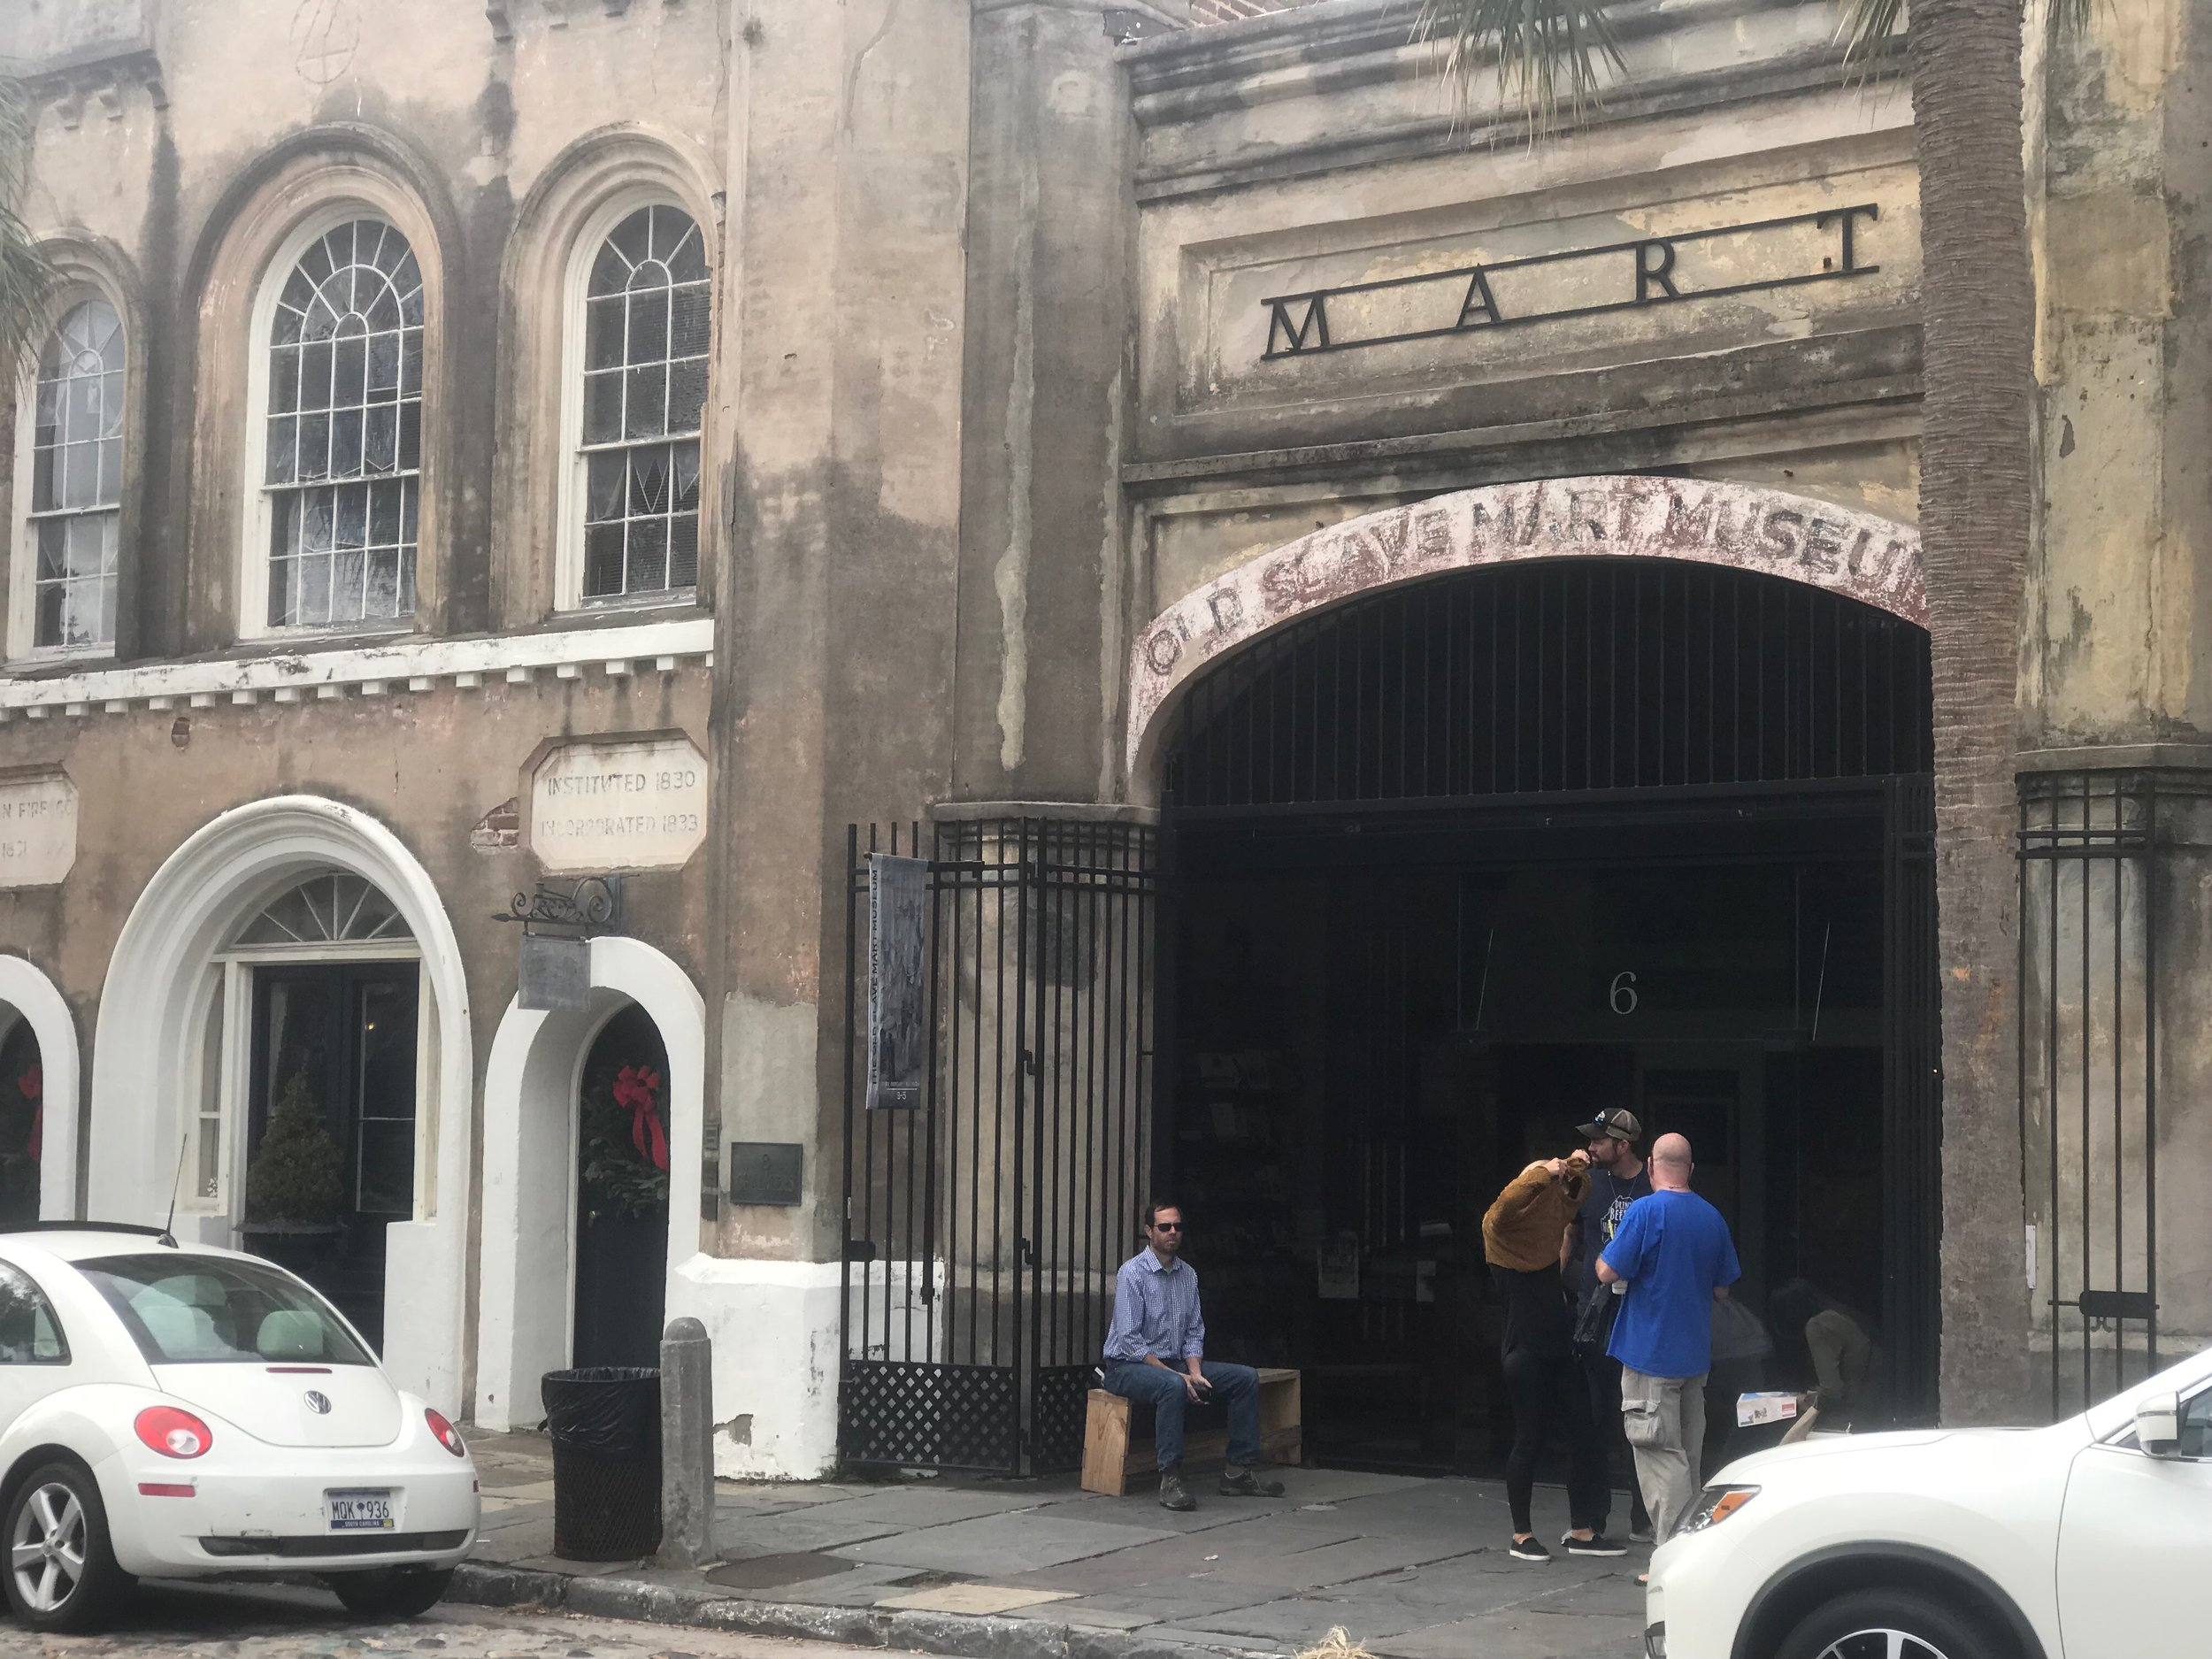 Charleston, SC: The city's largest slave market is now a museum run by Charleston's city government.